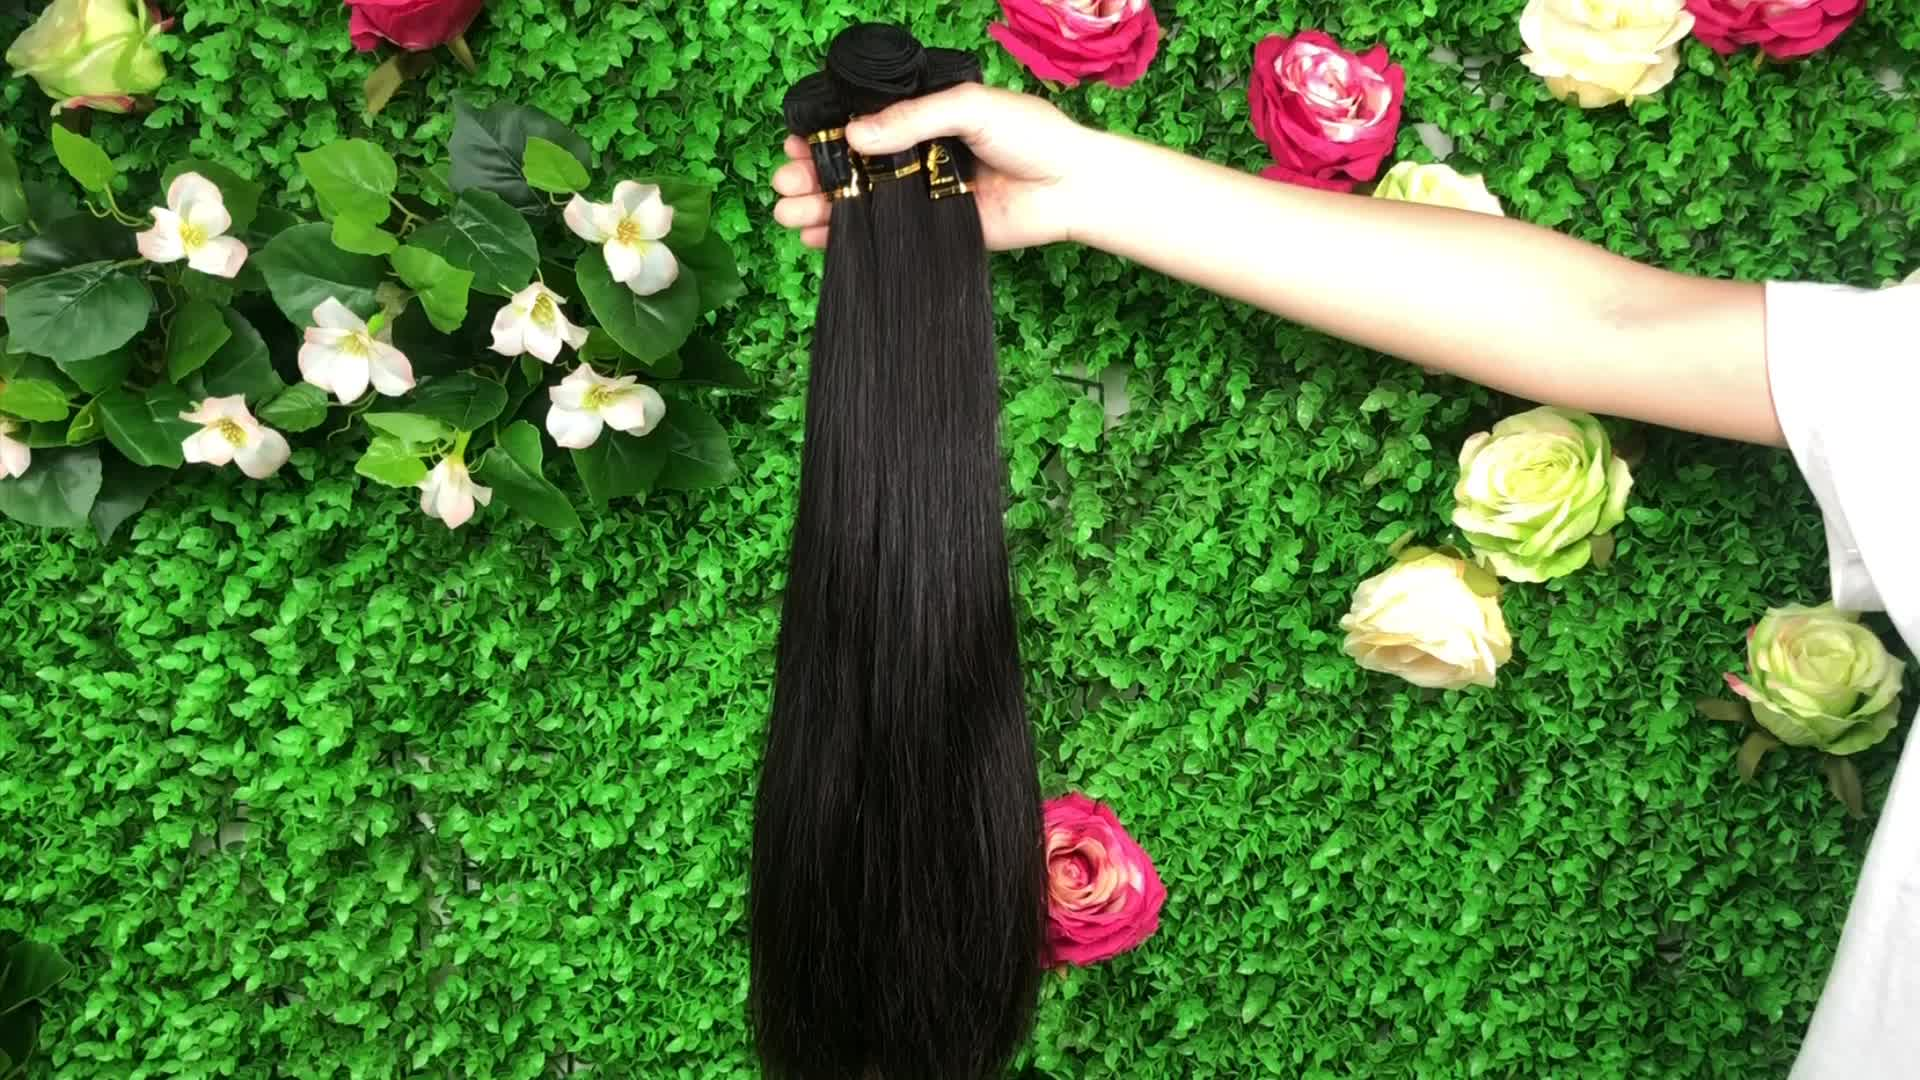 Aosun Wholesale Cuticle Aligned Hair From India,10a Virgin Indian Human Hair,Wavy Unprocessed Raw Indian Hair Bundles